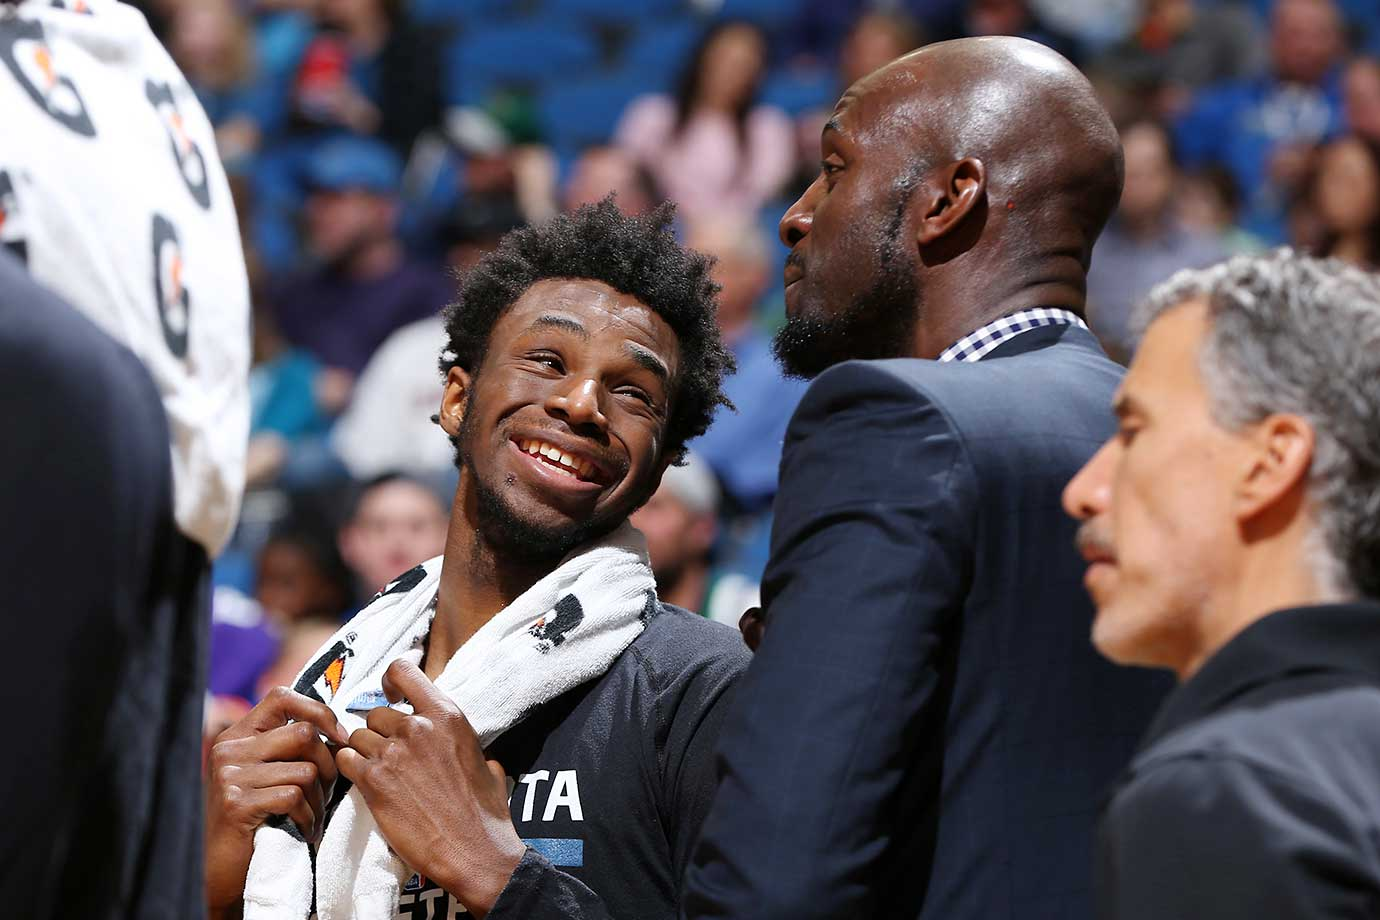 Andrew Wiggins and Kevin Garnett of the Minnesota Timberwolves during the game against the Dallas Mavericks.